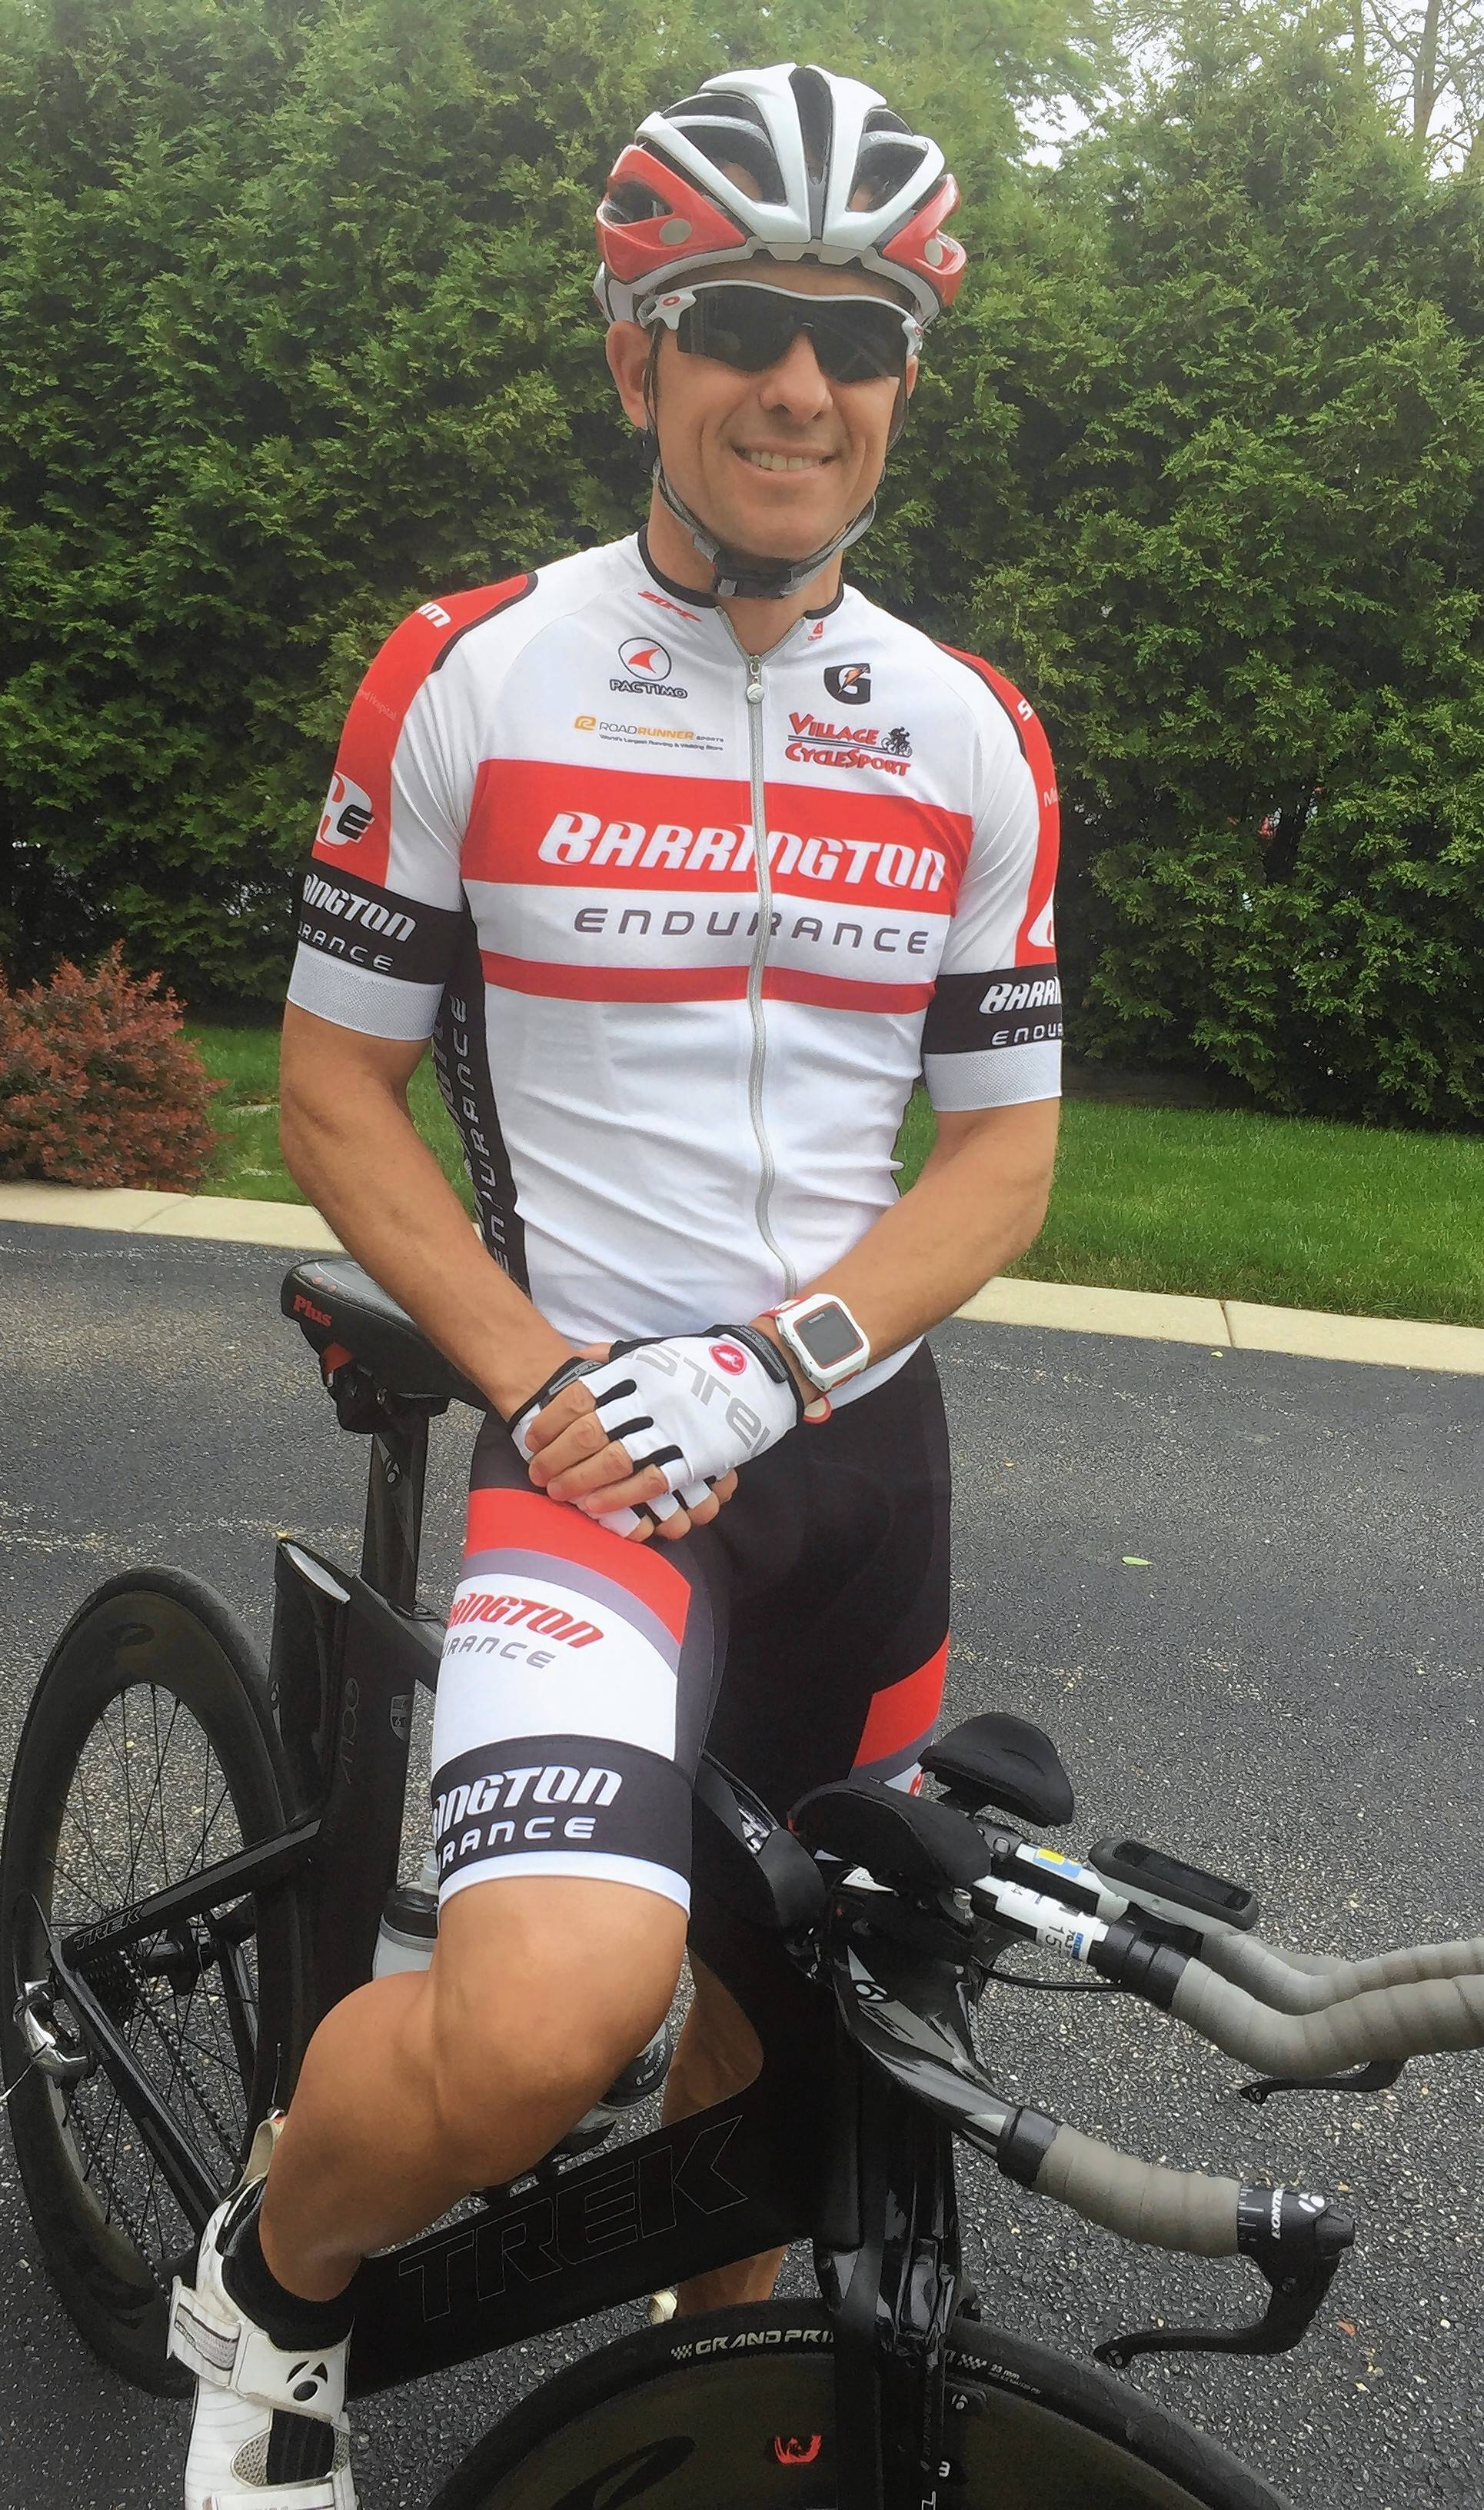 Ted Thome has participated in and volunteered for the annual Barrington Honor Ride and Run that benefits miliary veterans. Thome, 47, of Barrington, is a West Point graduate and an endurance athlete who served in the Army from 1993 to 1998.